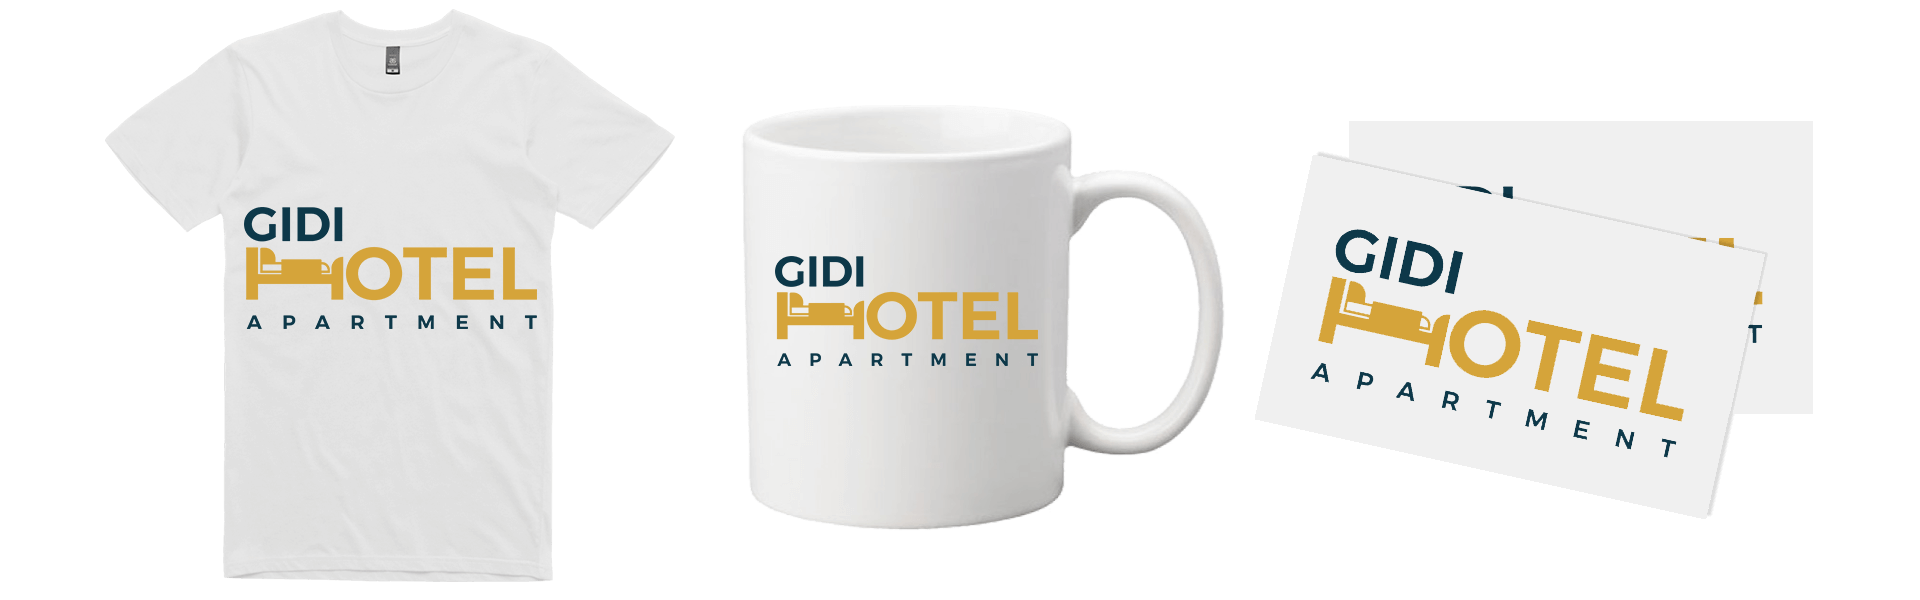 gidi hotel apartments